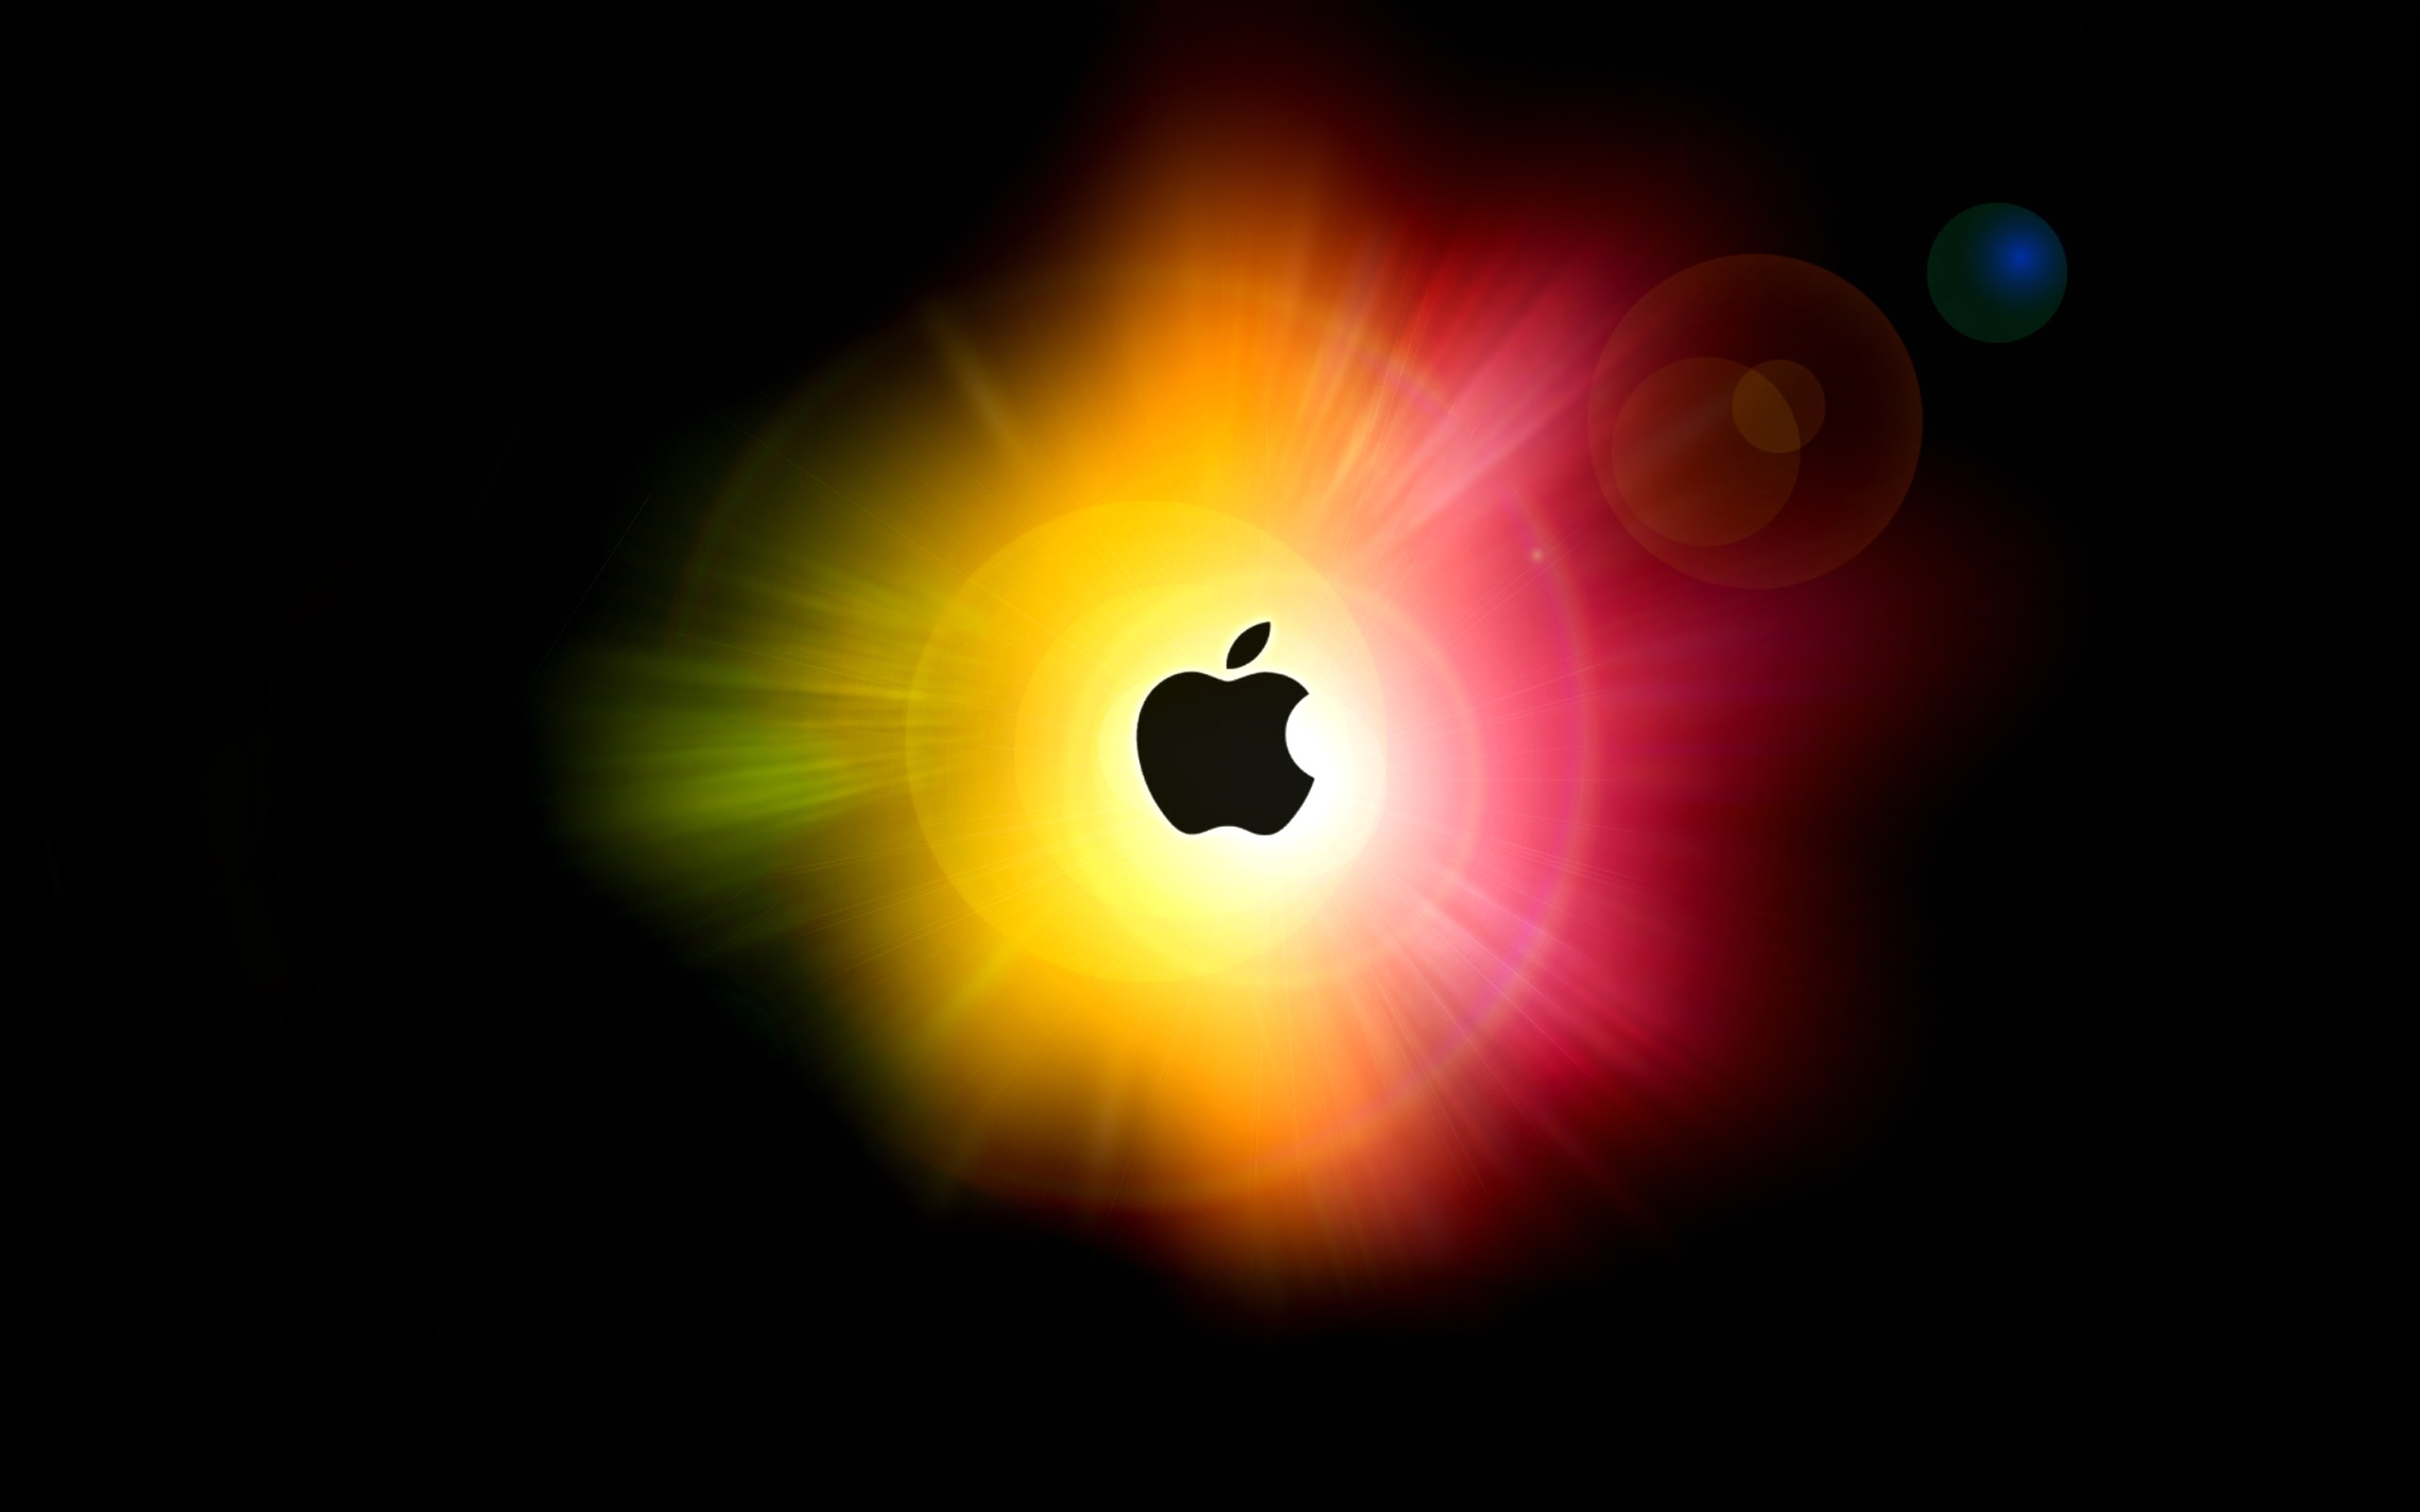 Colorful Apple Wallpaper 2560x1600 Colorful, Apple, Inc, Logos 588